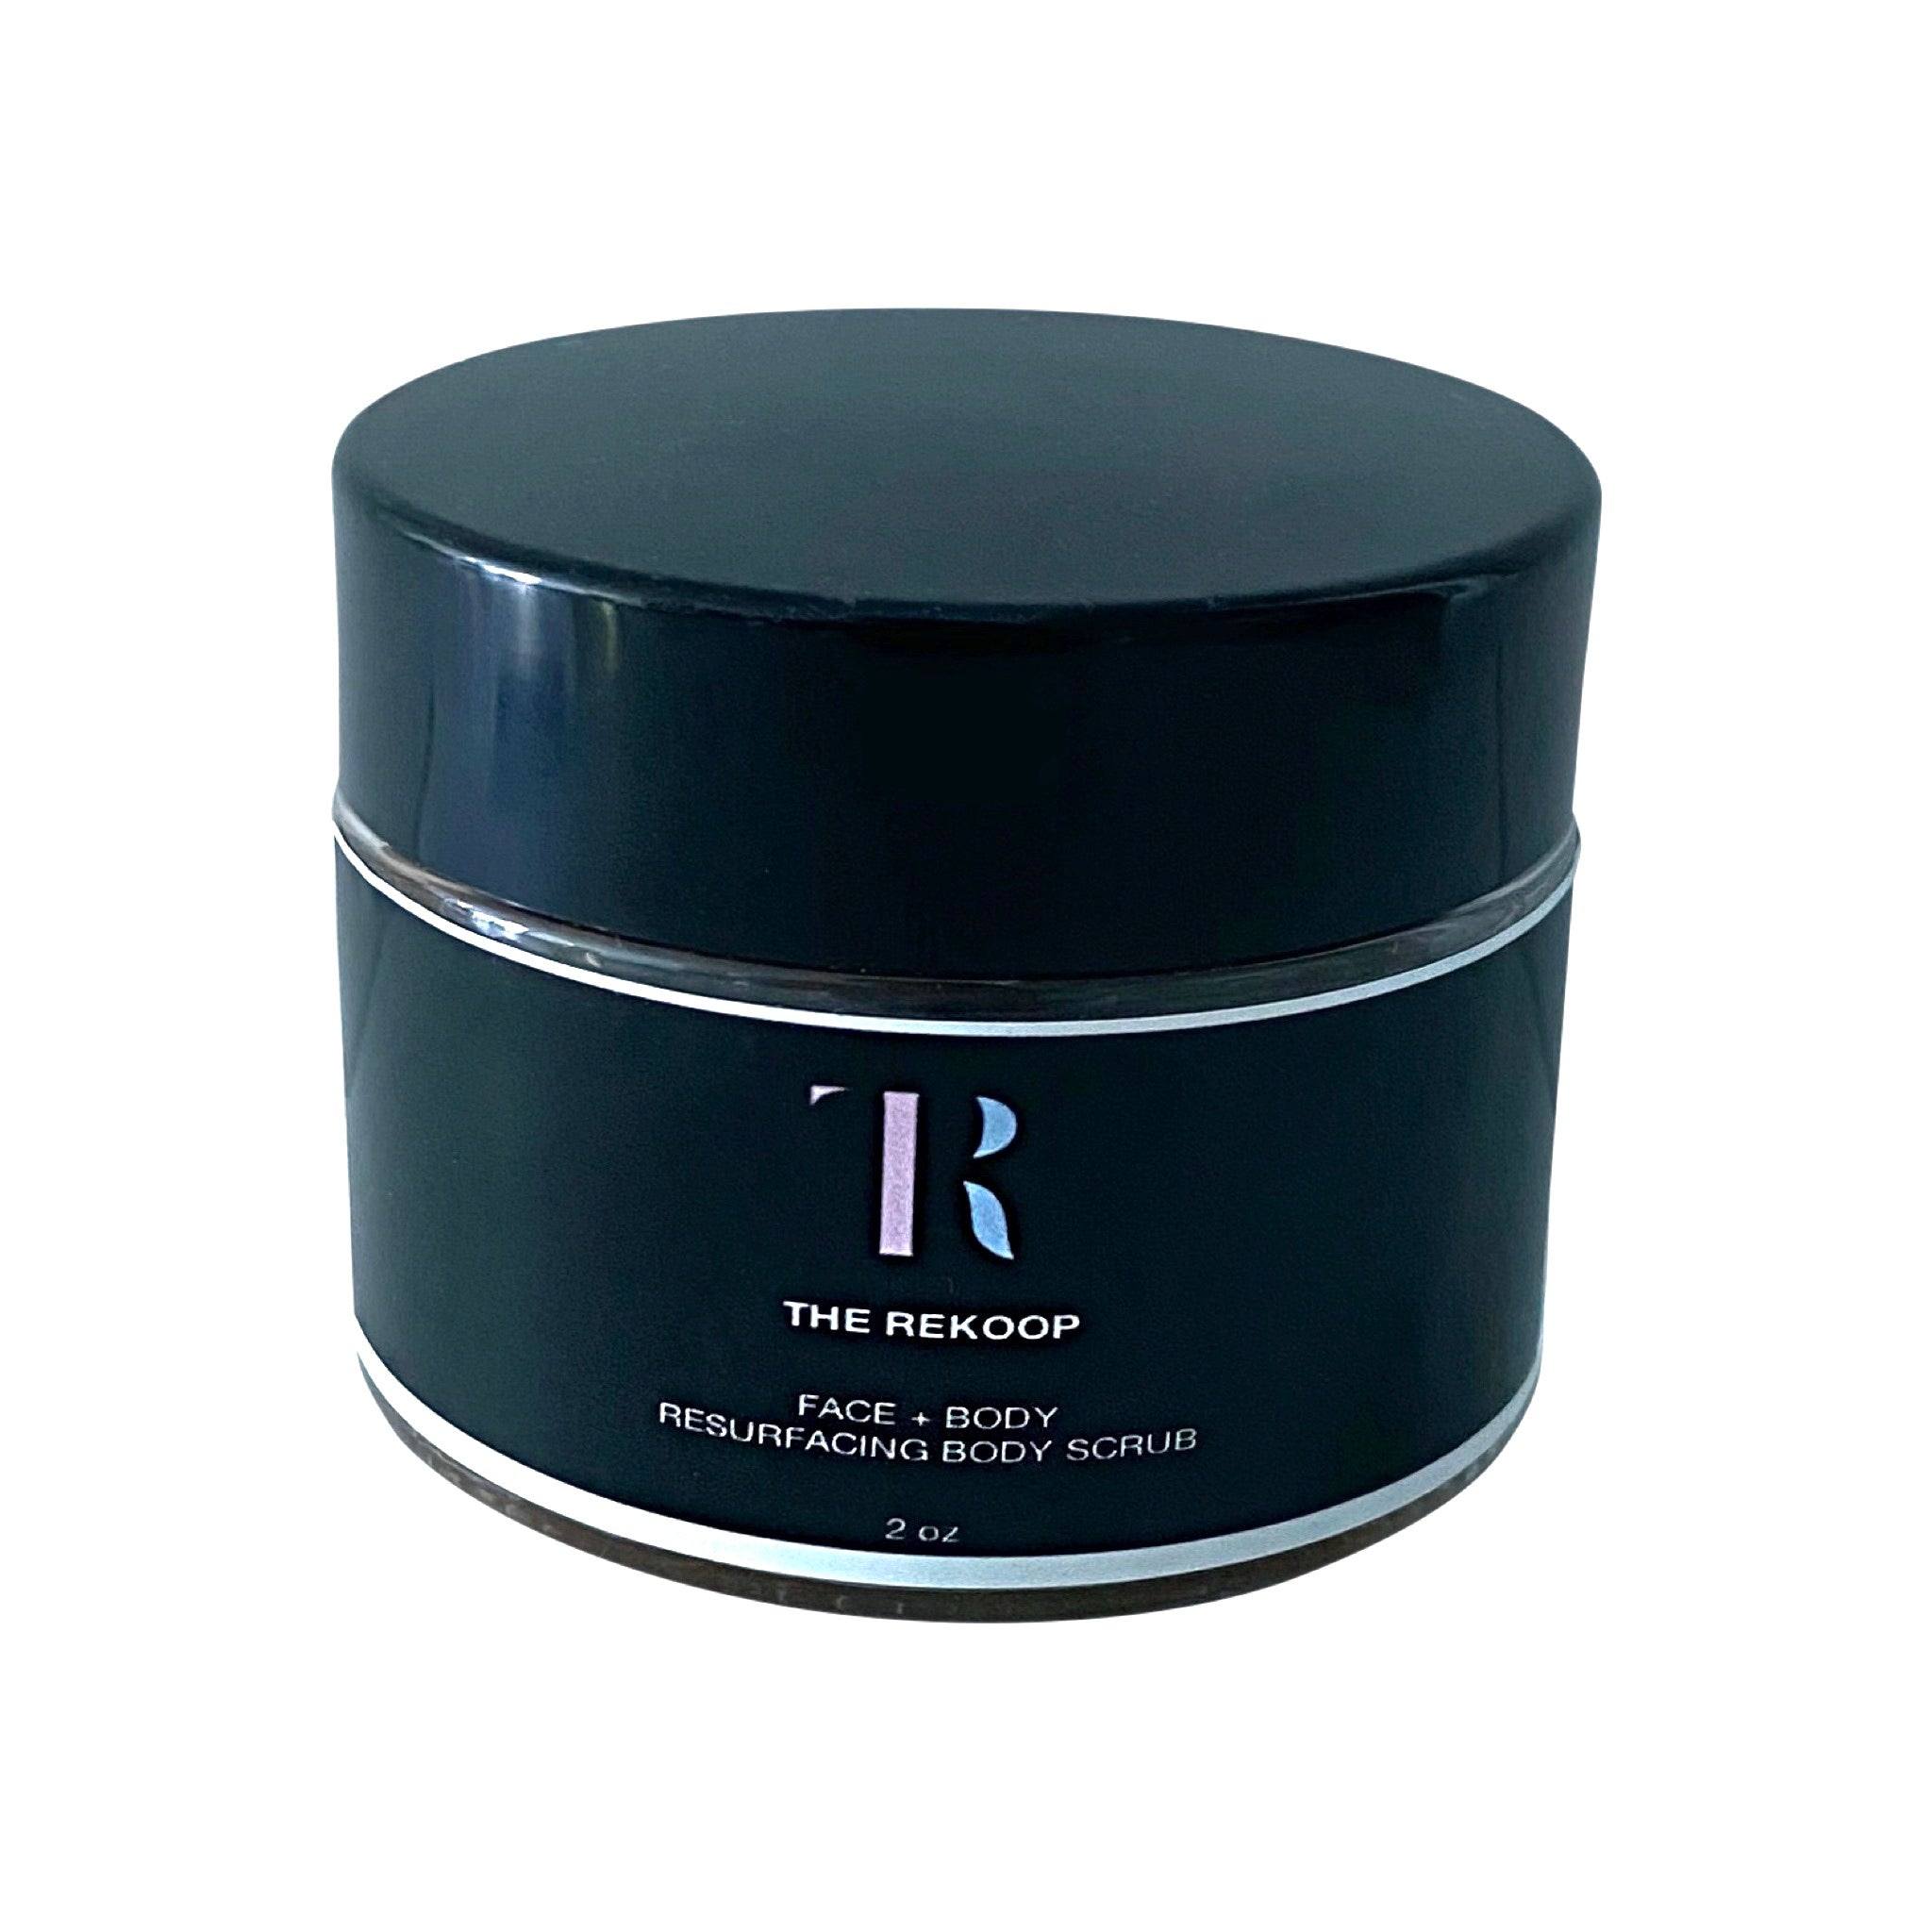 Resurfacing Face + Body Scrub - The ReKoop